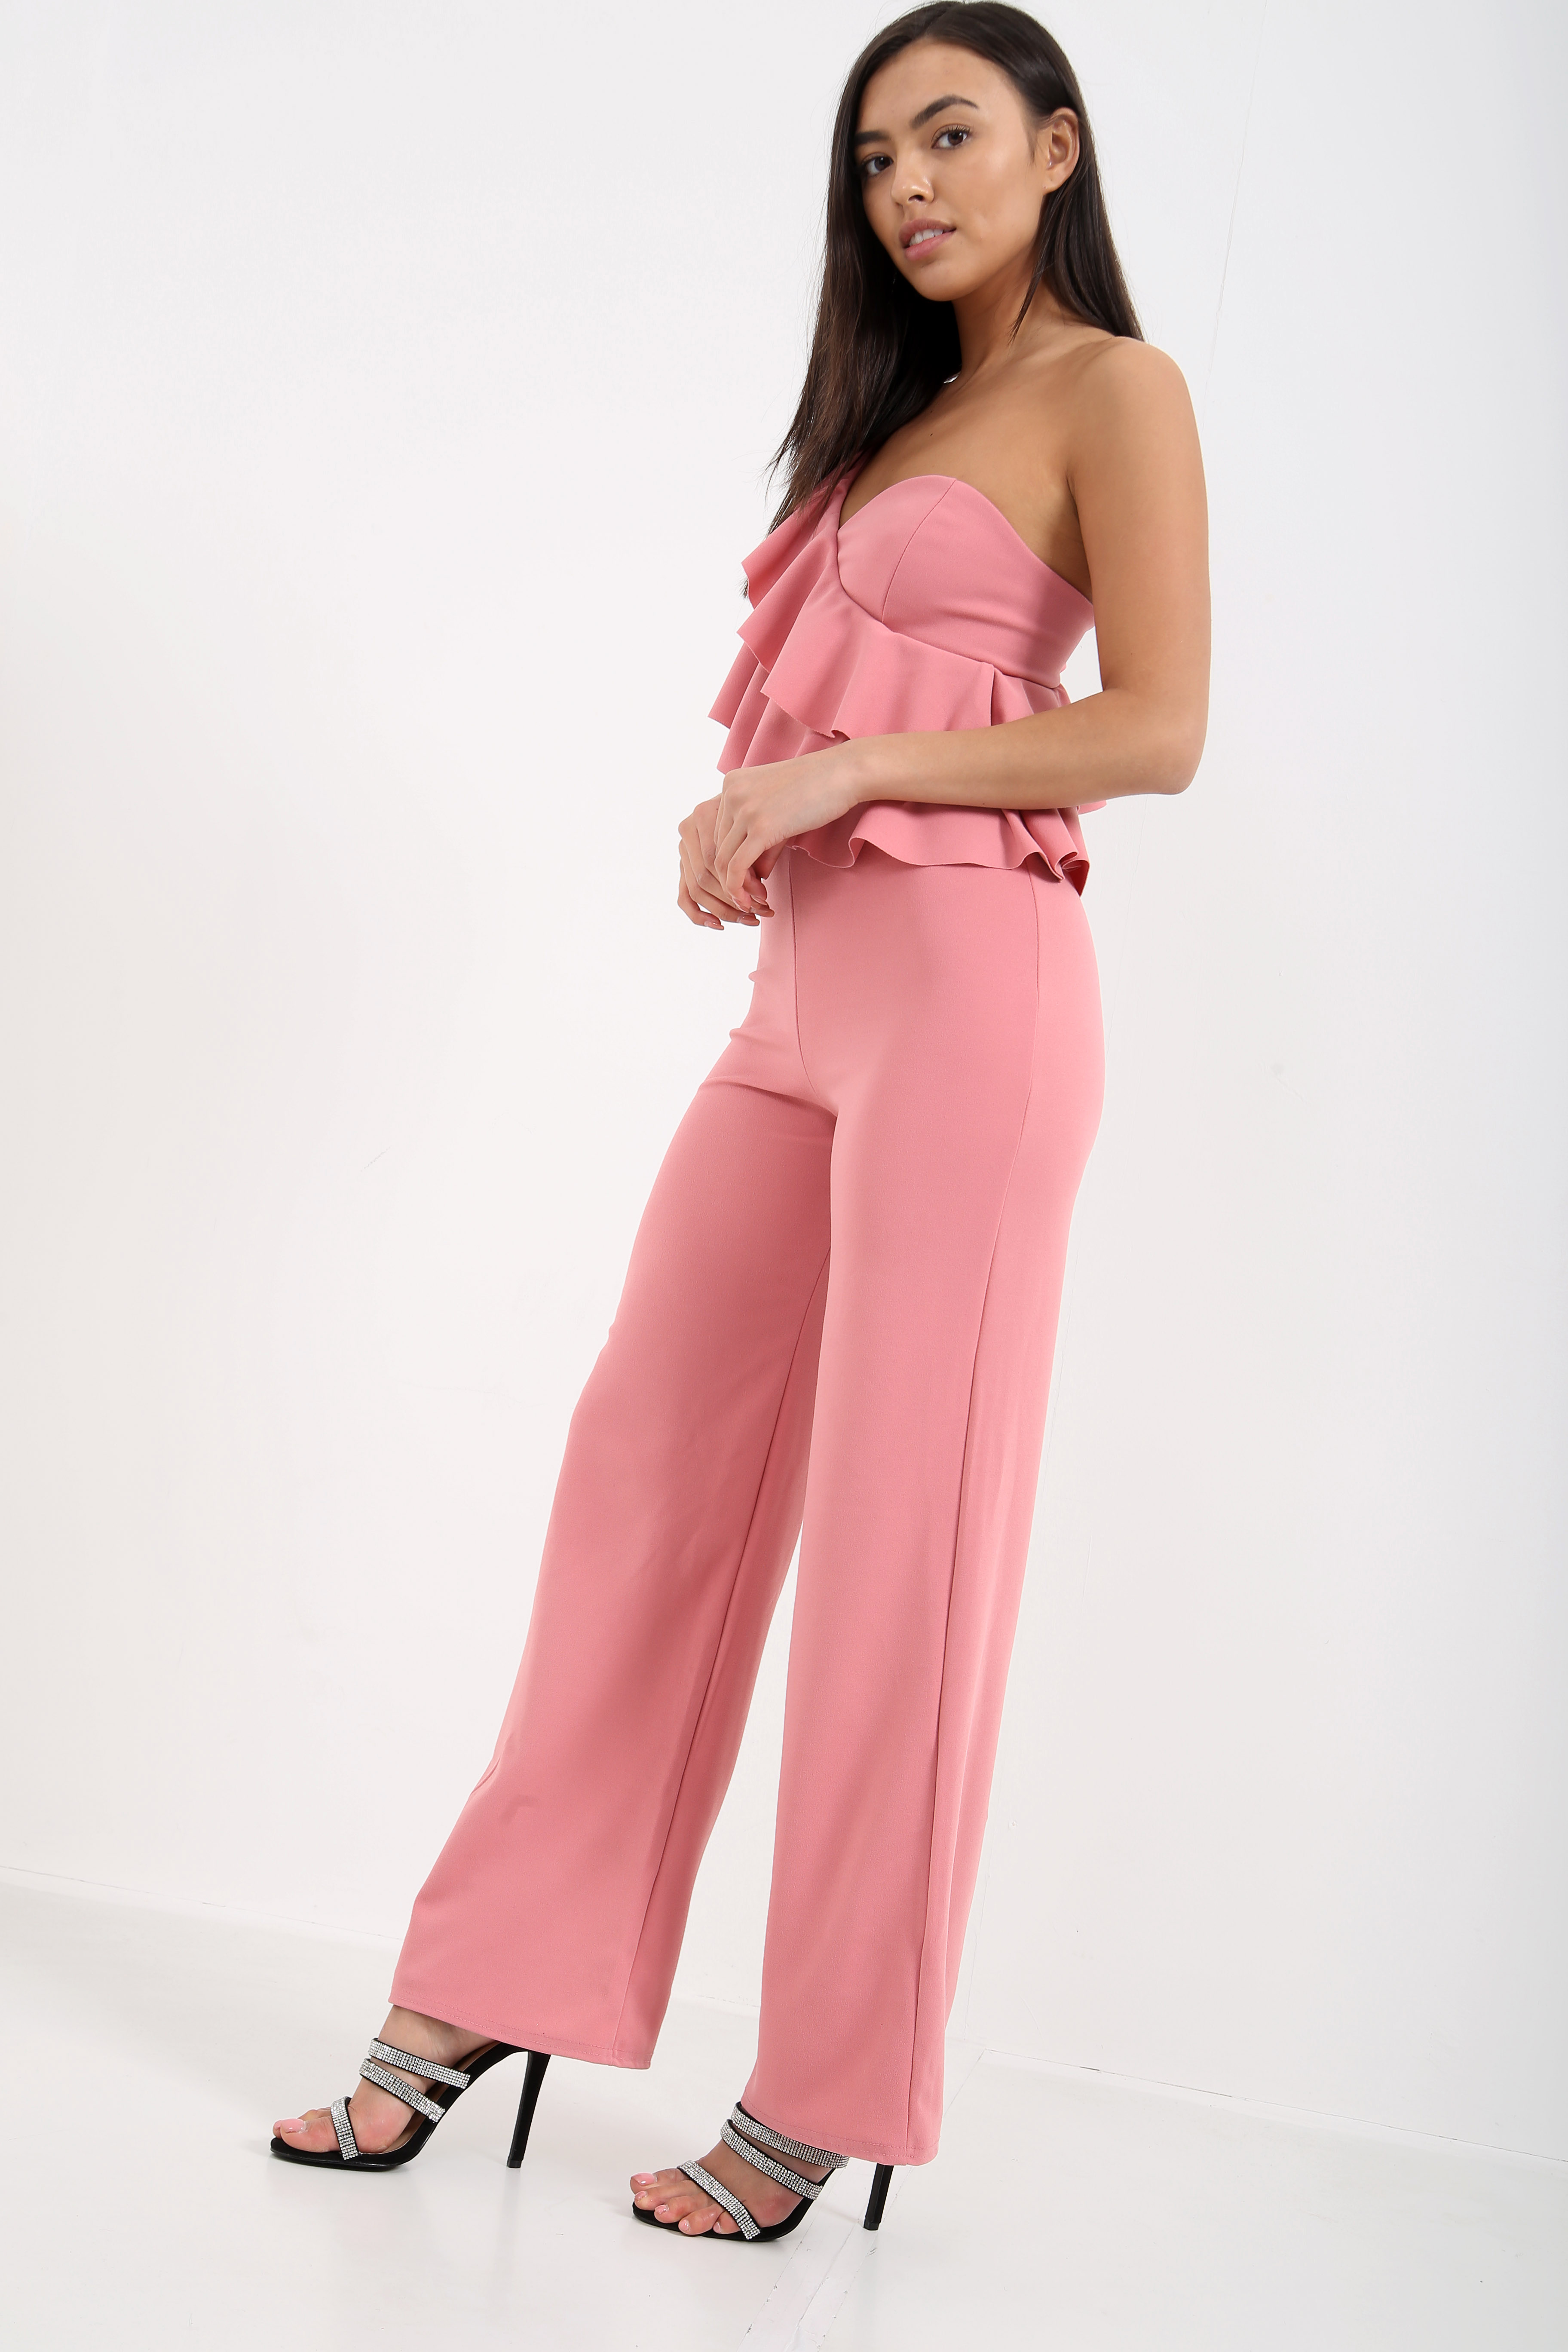 72c75688d71 Raylie Pink One Shoulder Ruffle Jumpsuit - Shelikes